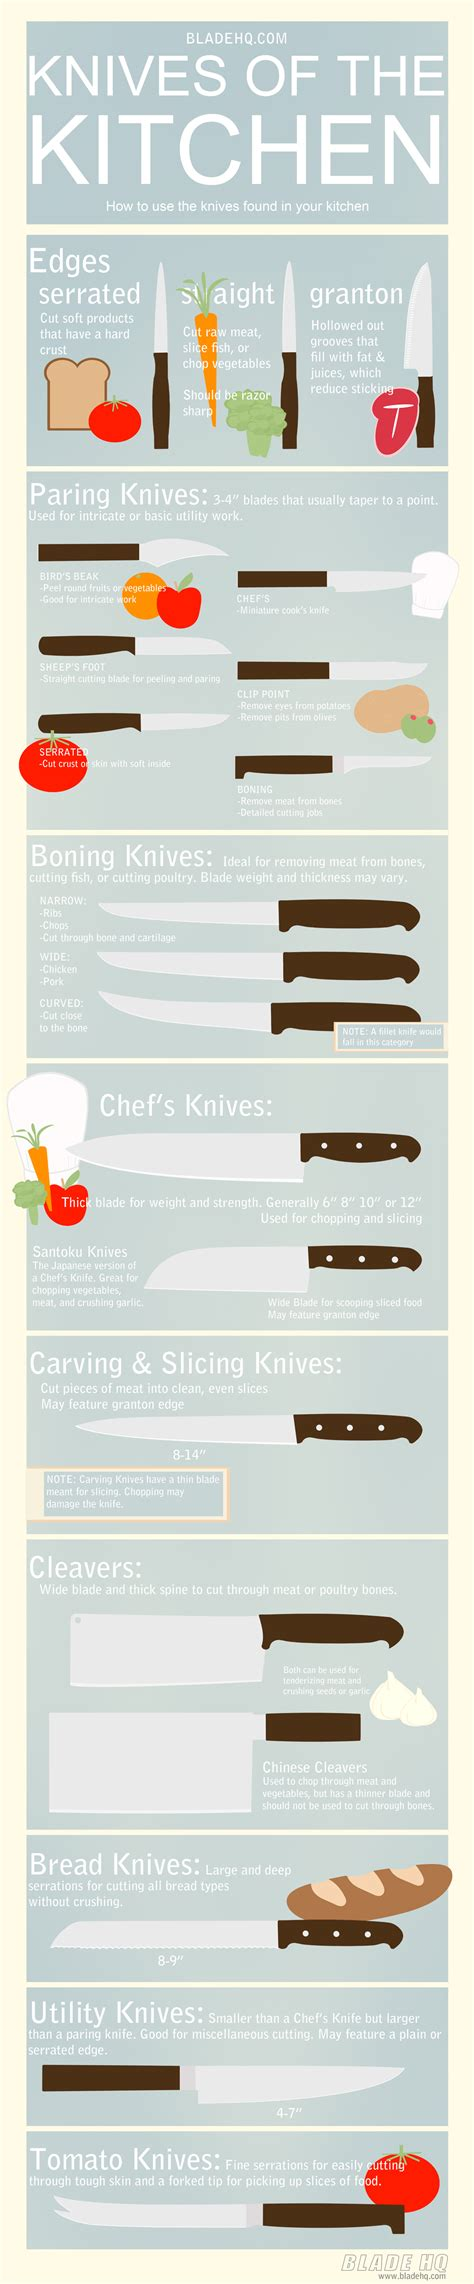 kitchen knives guide knives of the kitchen infographic infographic list